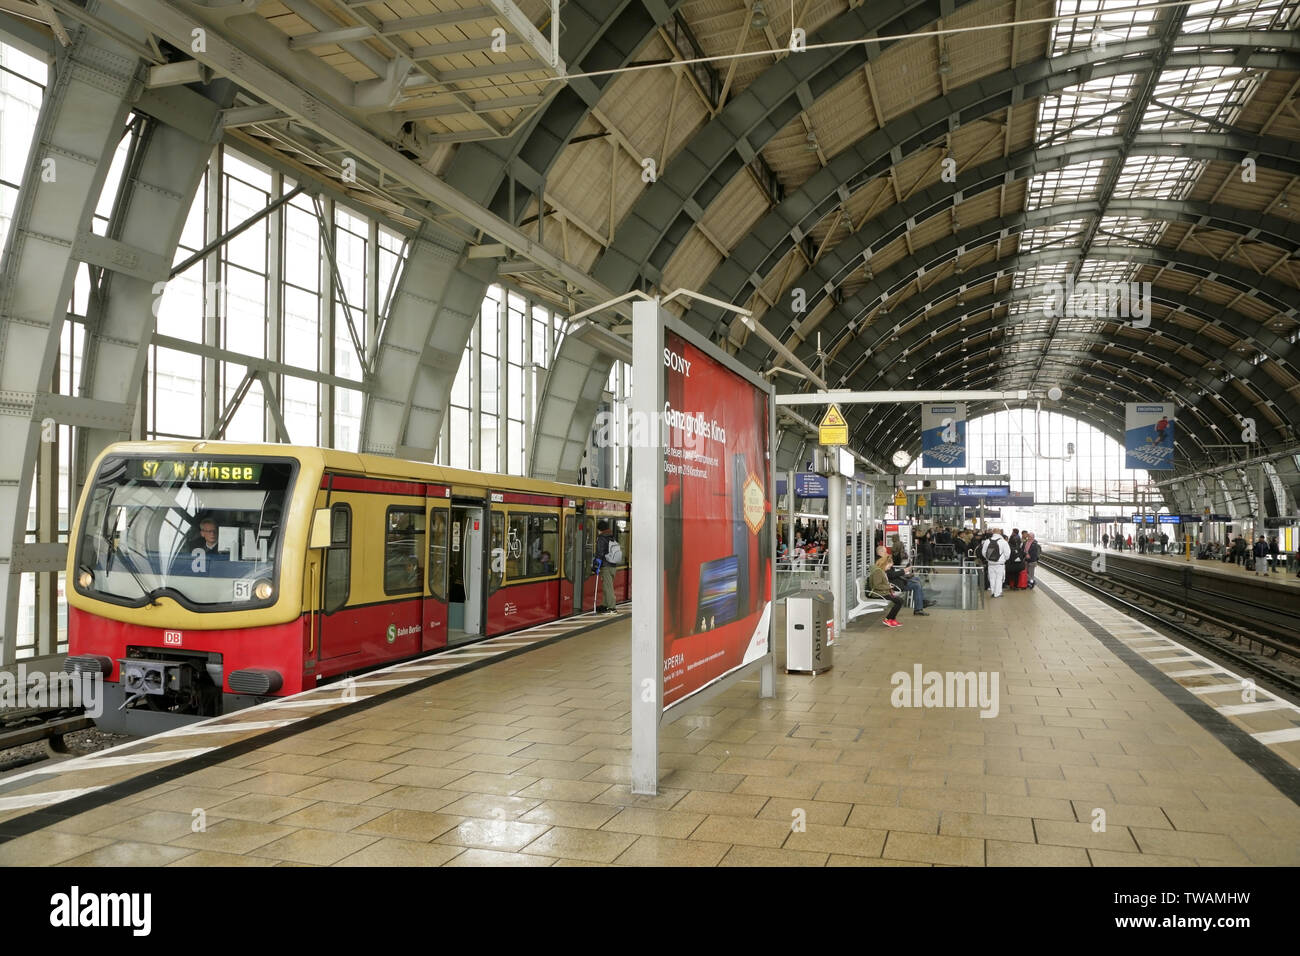 Bvg S-bahn Wannsee Berlin Wannsee Station Stockfotos Berlin Wannsee Station